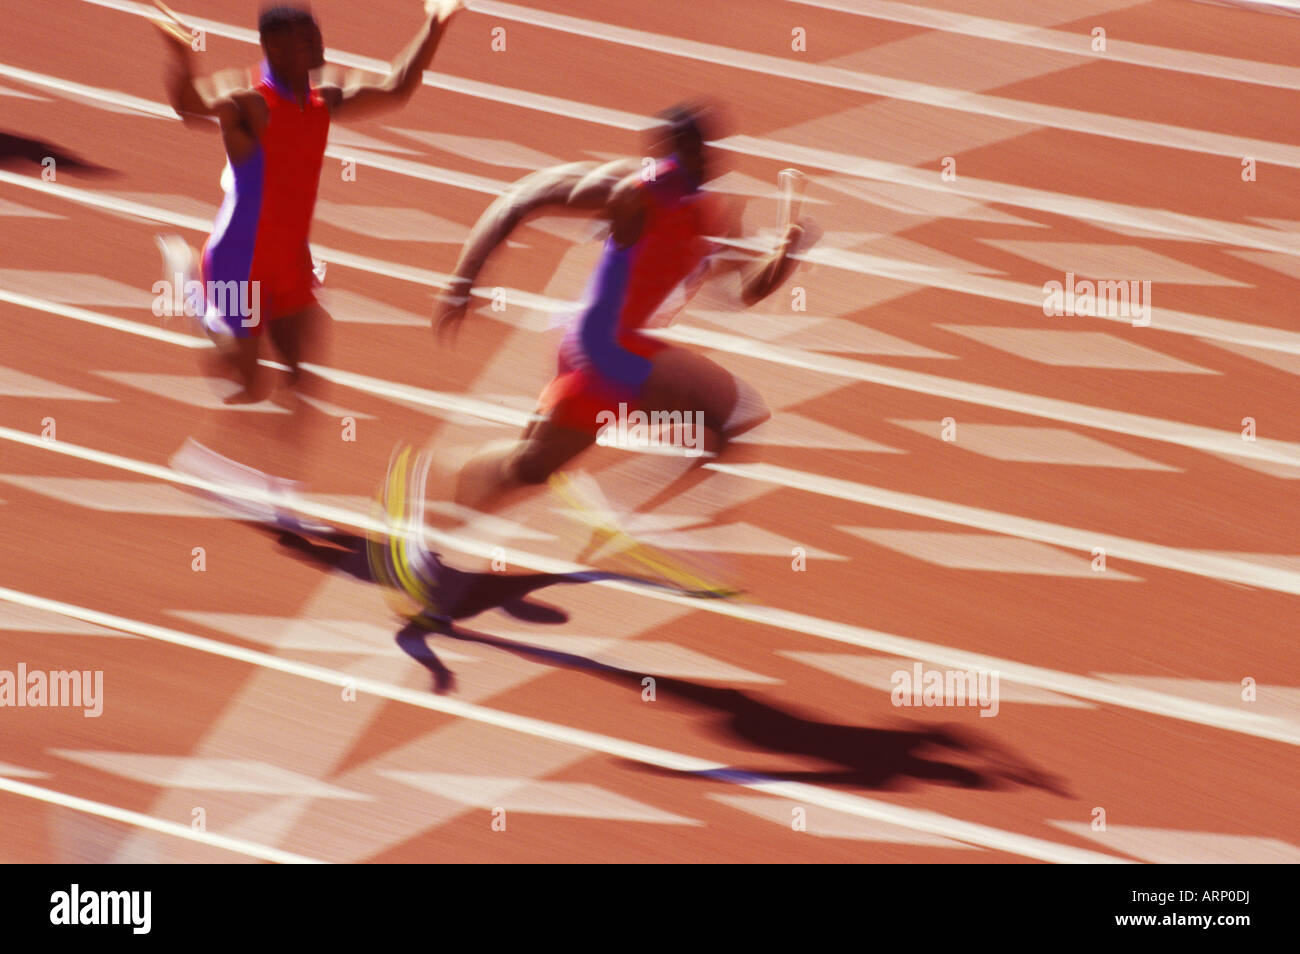 Two runners of a relay team pass the baton. - Stock Image